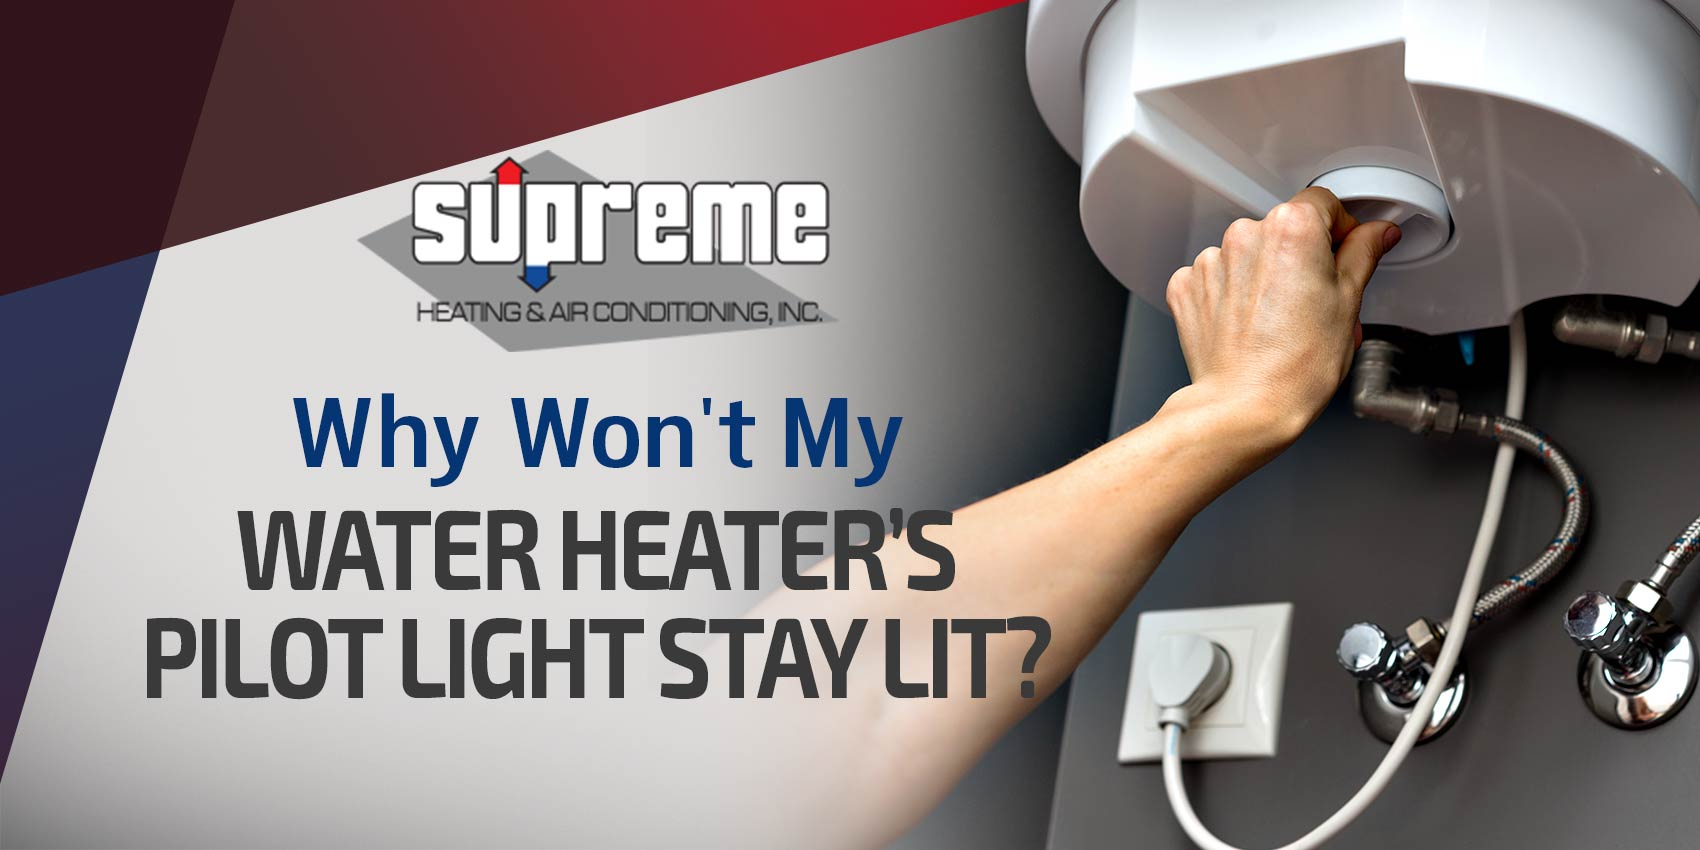 Why Won't My Water Heater's Pilot Light Stay Lit?